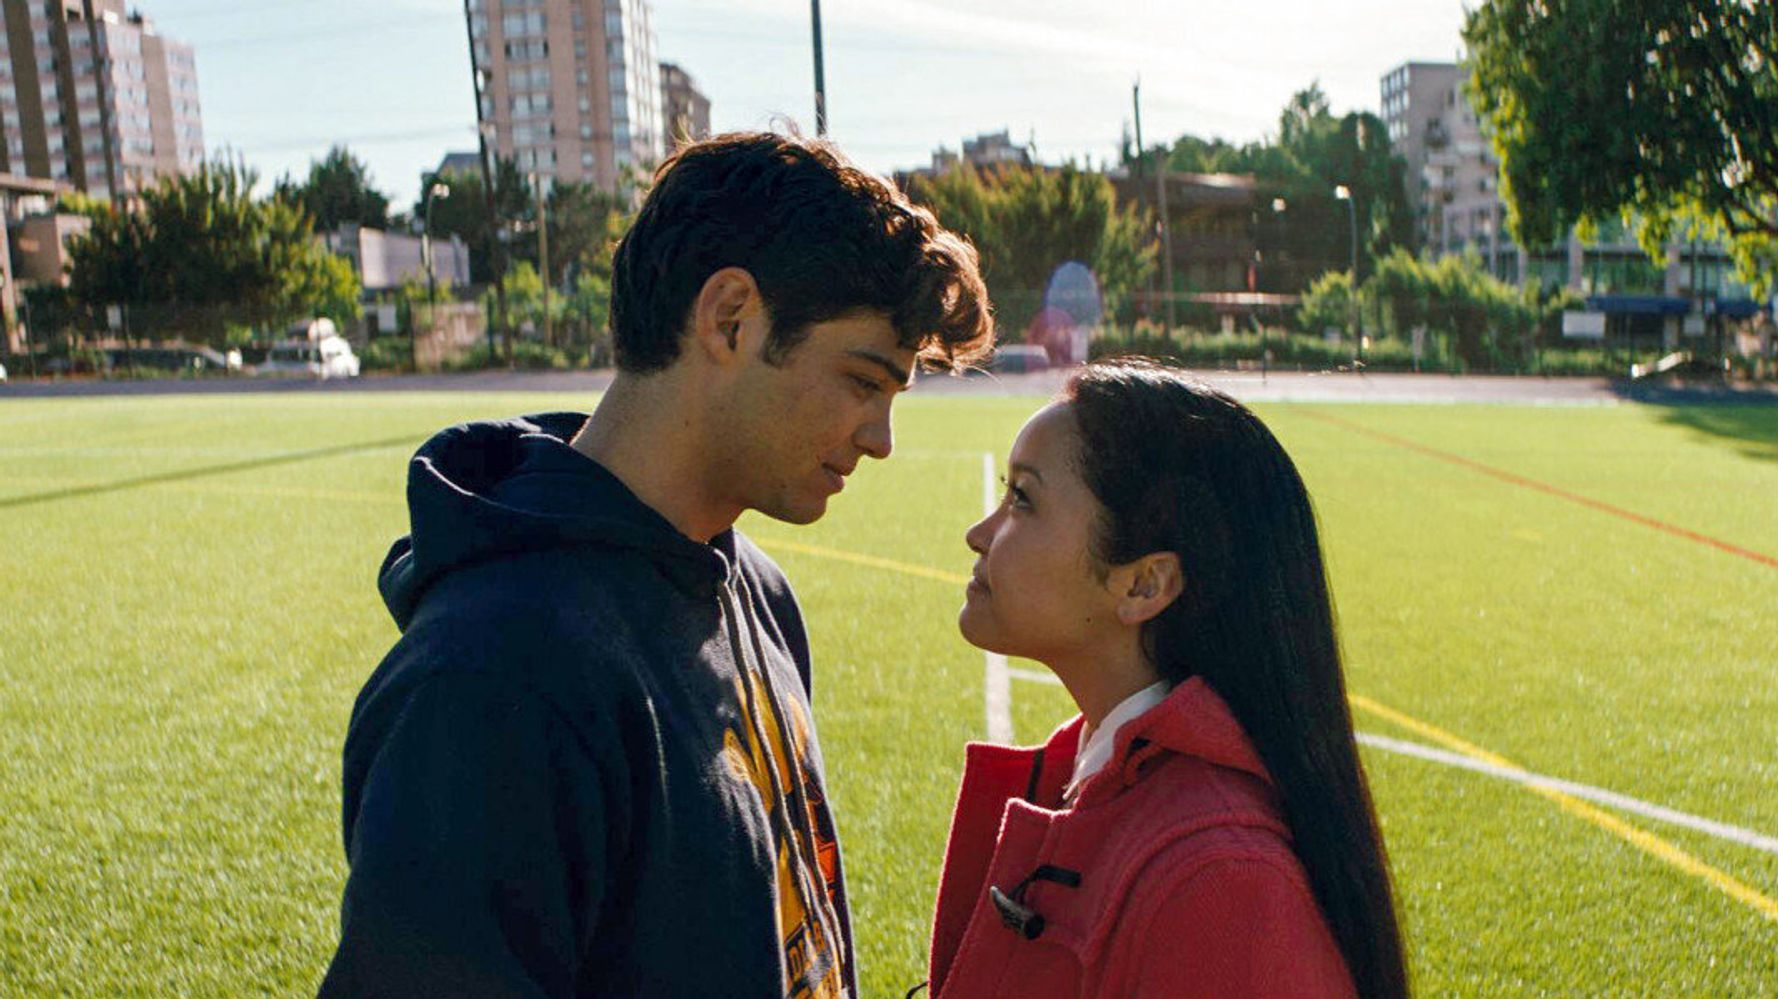 Westlake Legal Group 5d55d123220000d002f64661 'To All The Boys I've Loved Before' Sequel Finally Has A Release Date